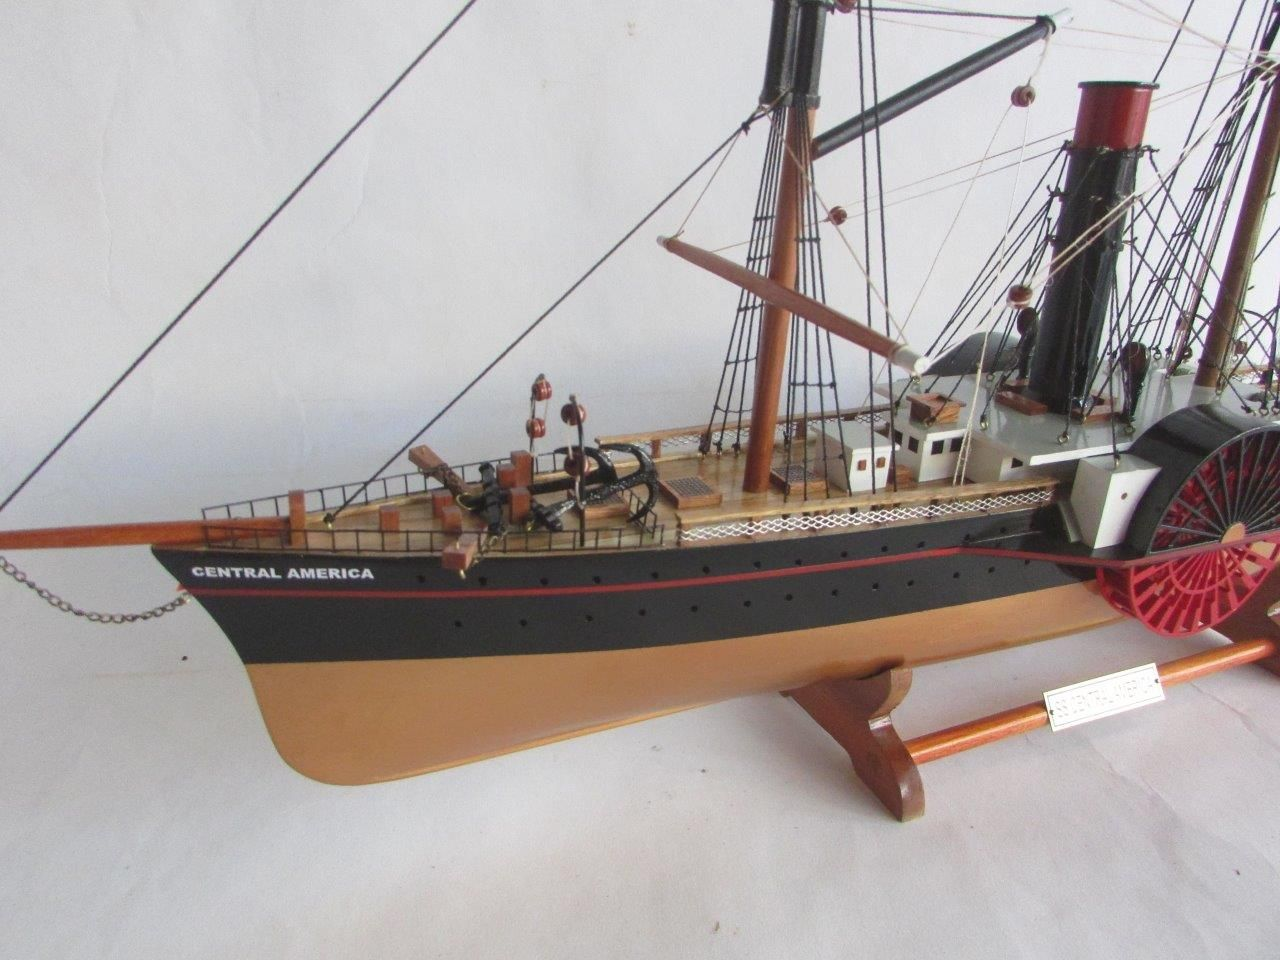 2053-13808-SS-Central-America-wooden-model-ship